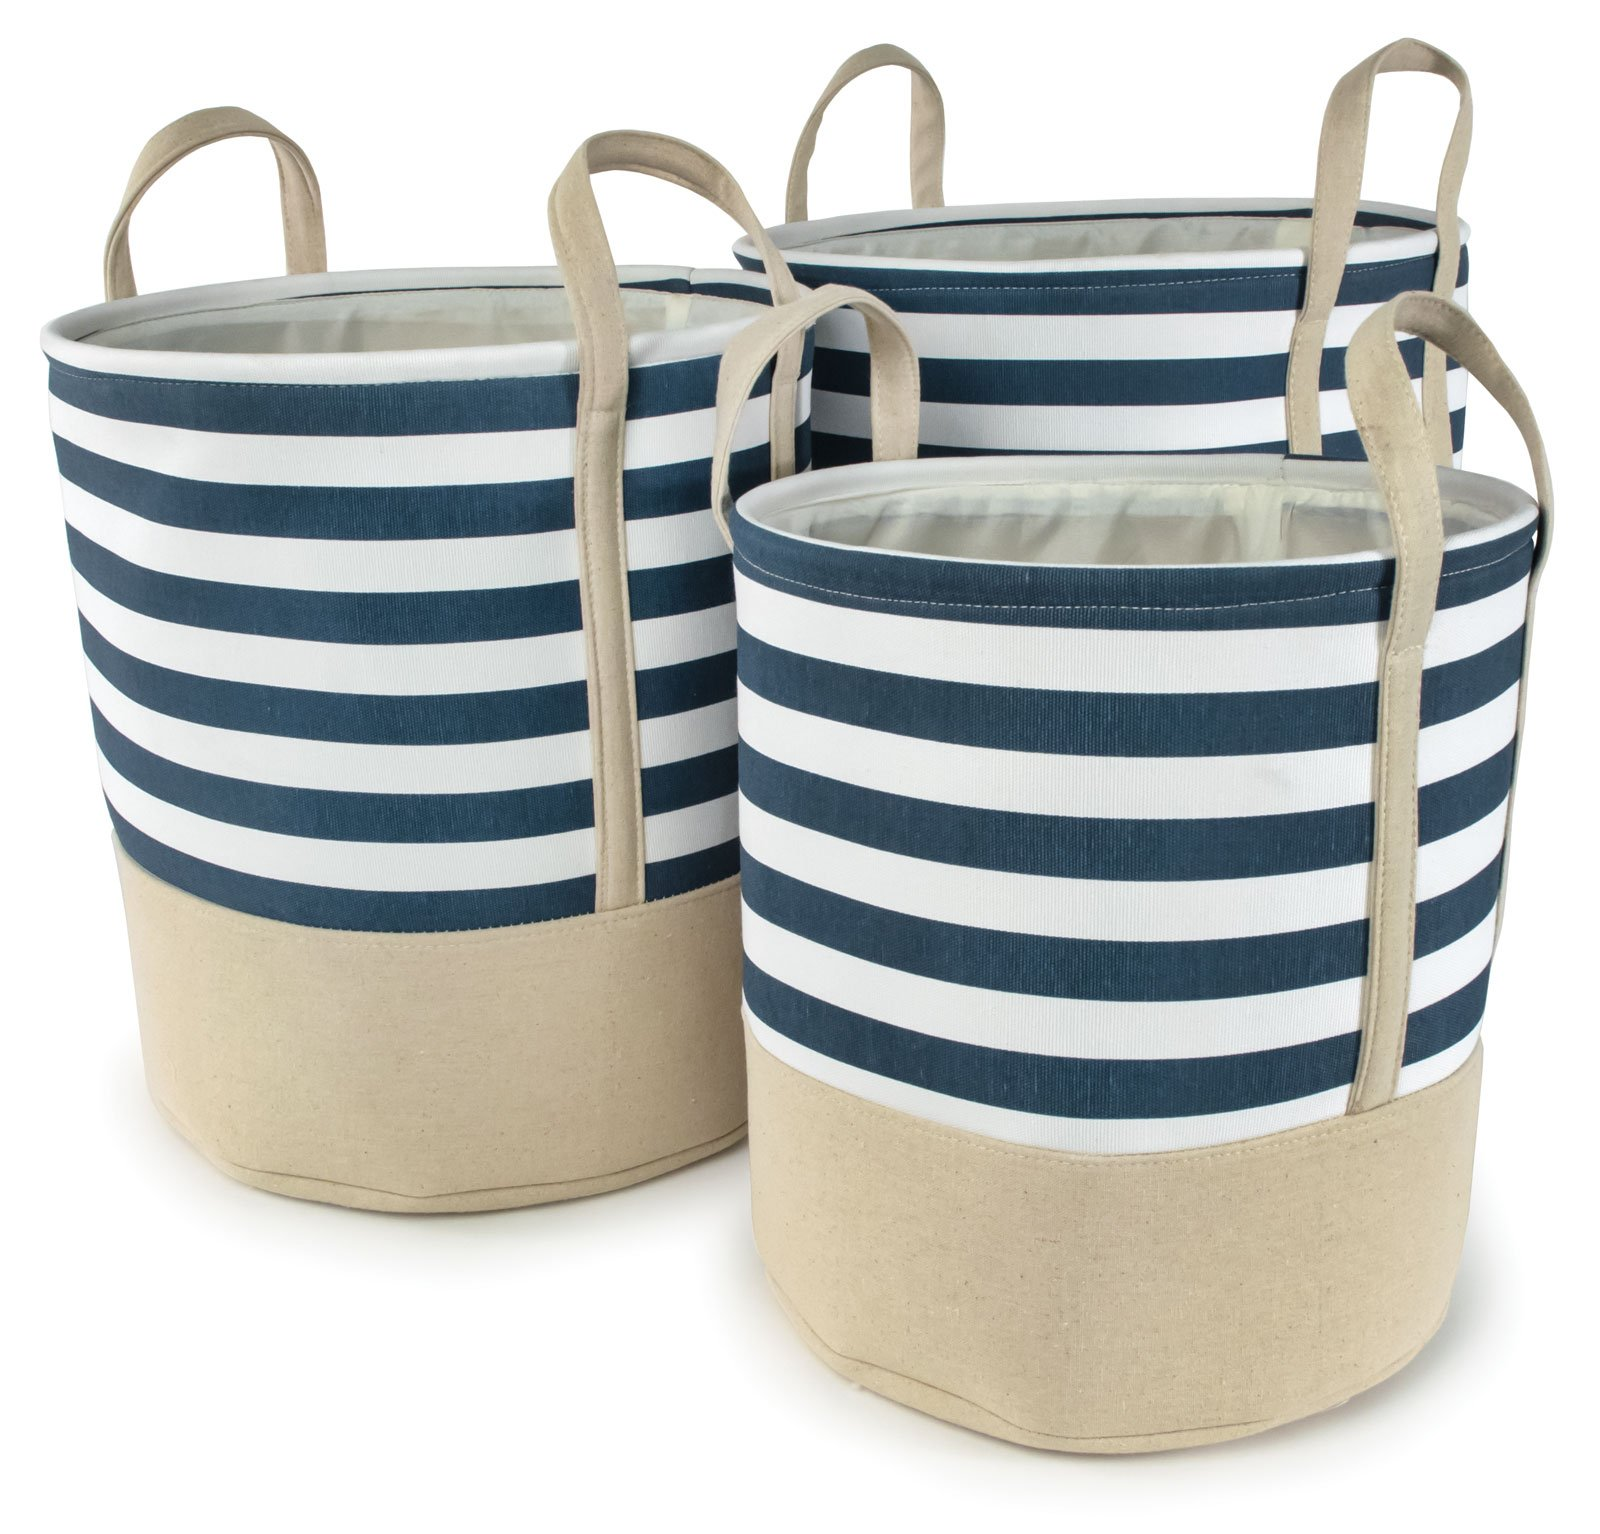 Blue Striped Cotton Canvas Nested Round Hampers, Set of 3 - Lg=17''Dx18''H